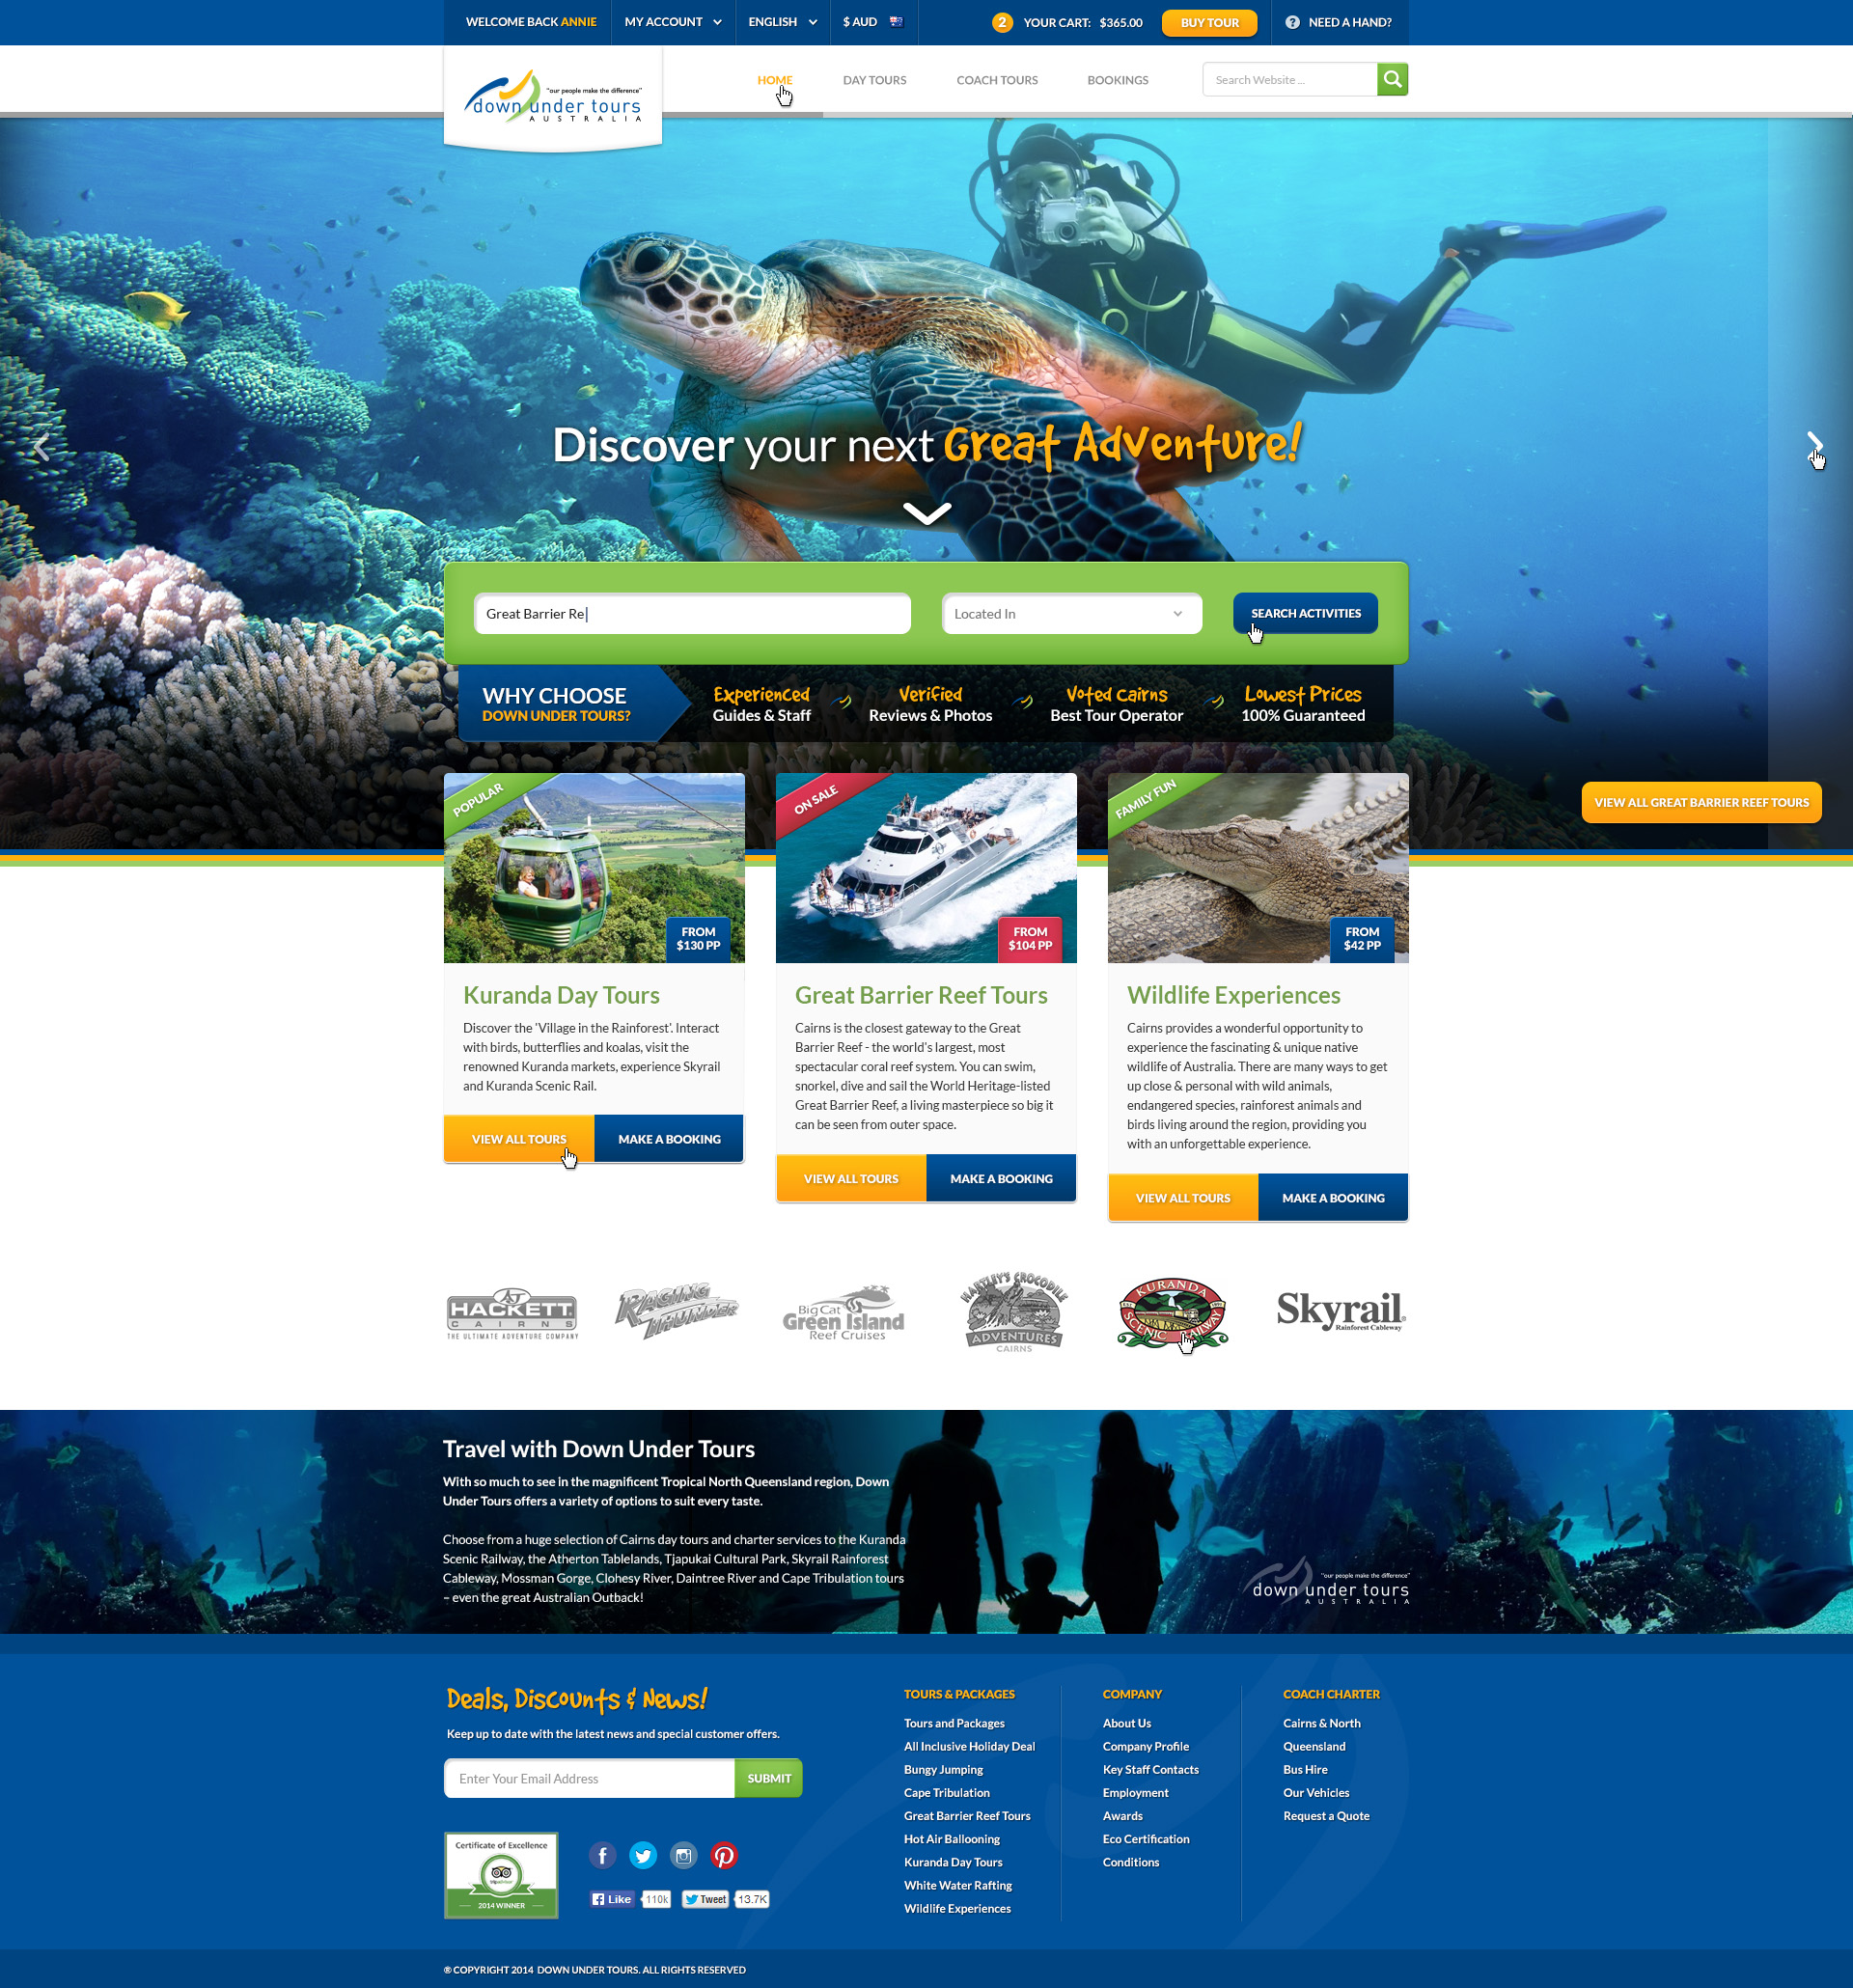 Website design concept for a Great Barrier Reef tour operator